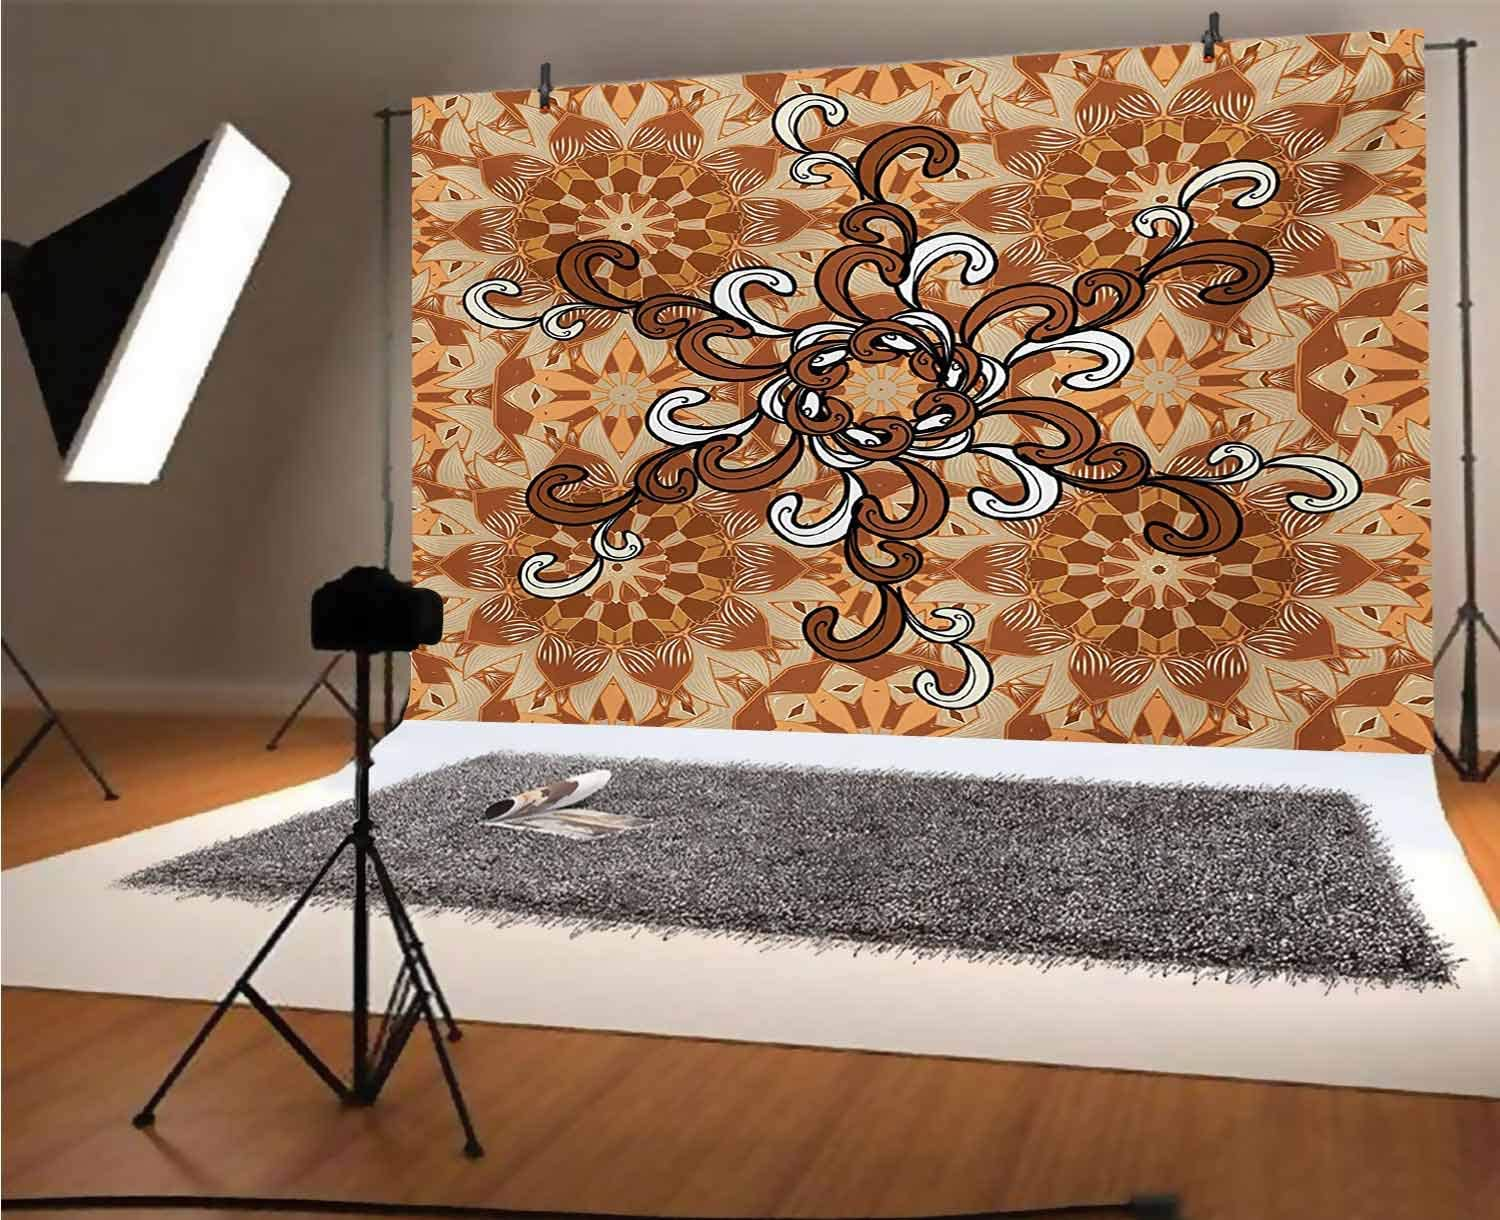 Tan 10x12 FT Photo Backdrops,Overlapping Circles with Big and Small Polka Dots Pattern Gradient Modern Display Background for Baby Shower Birthday Wedding Bridal Shower Party Decoration Photo Studio